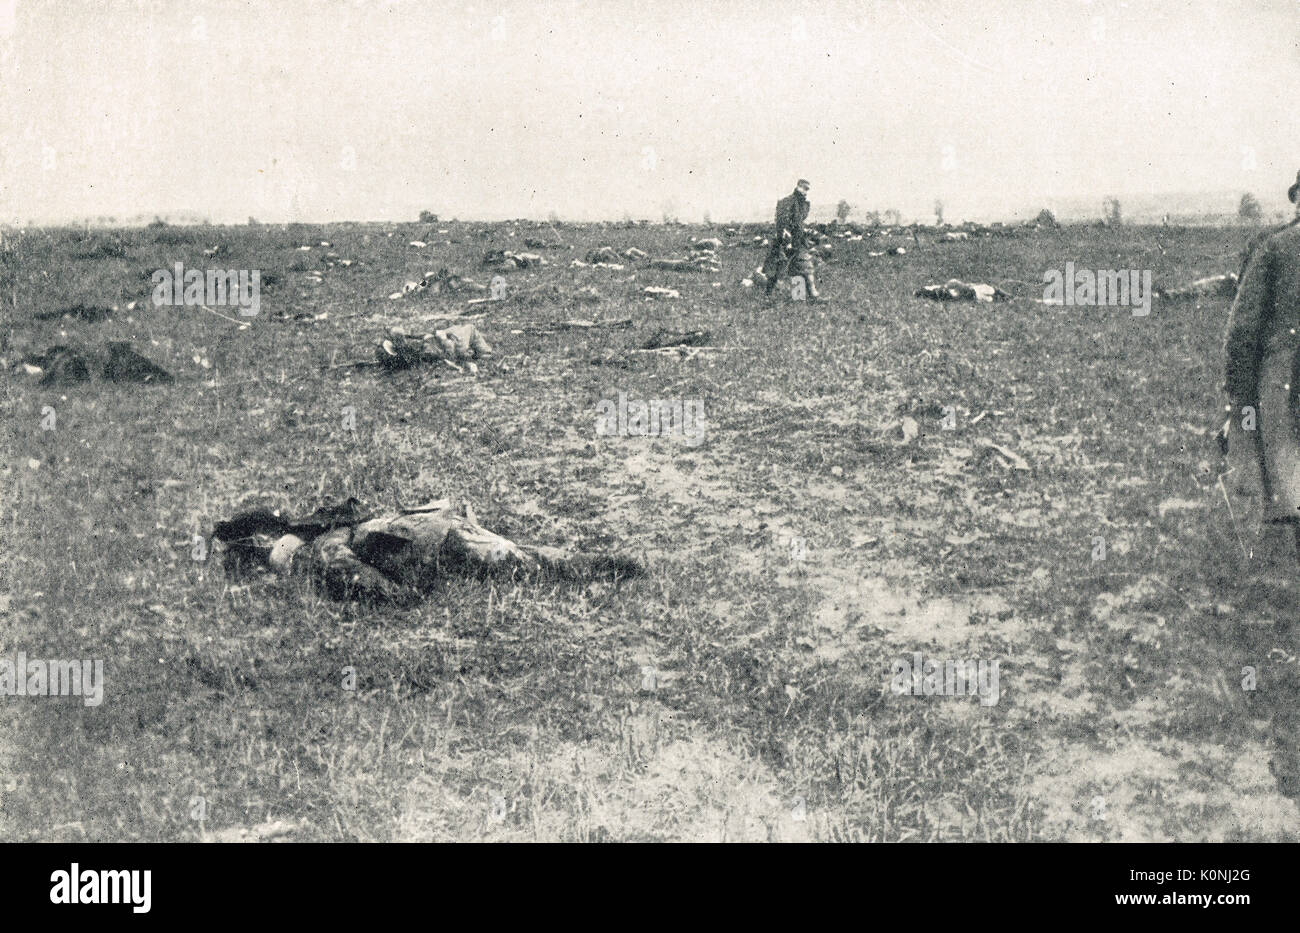 Battlefield littered with the dead, WW1 - Stock Image